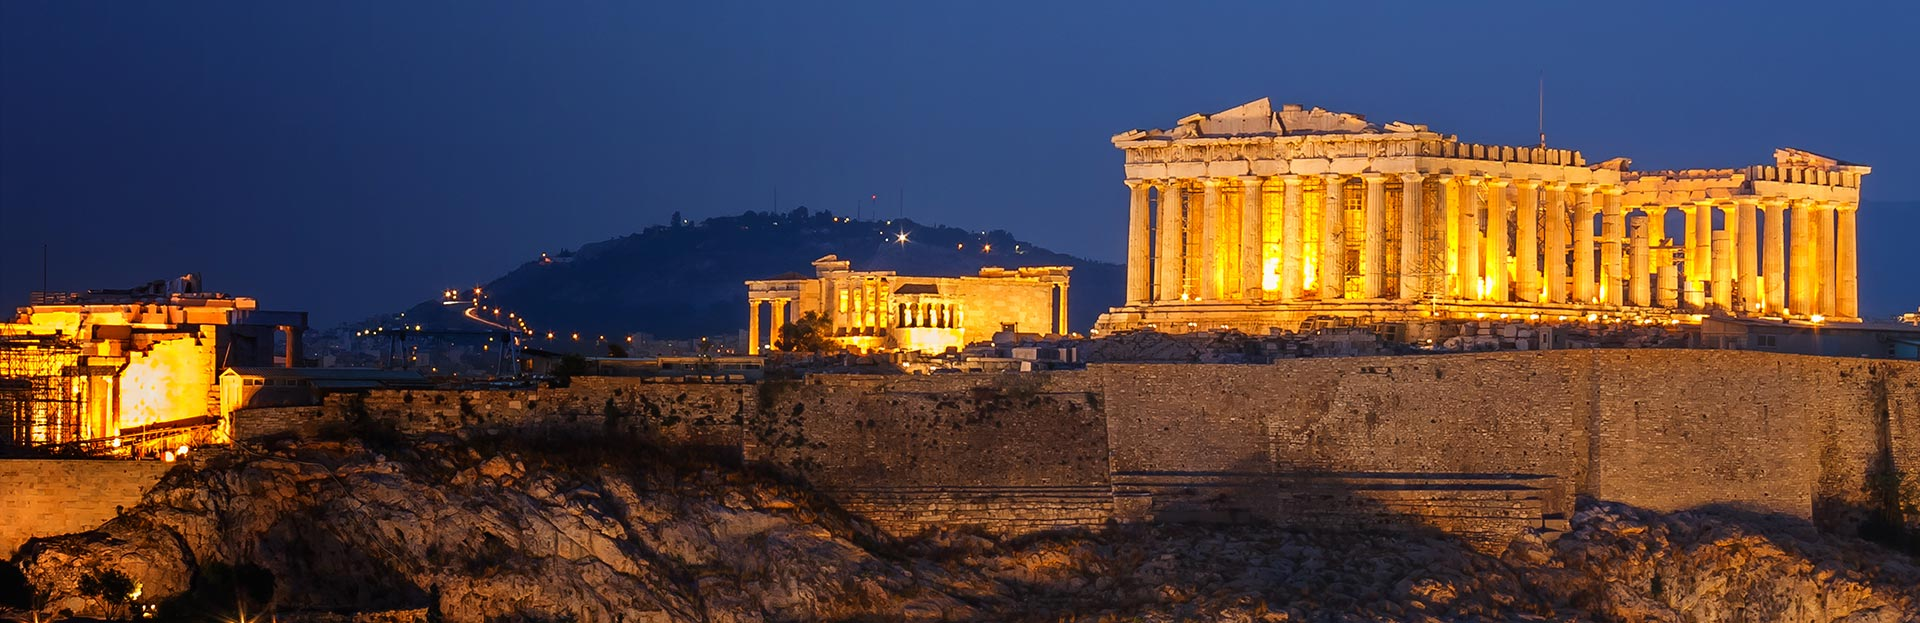 Athens Pantheon Night